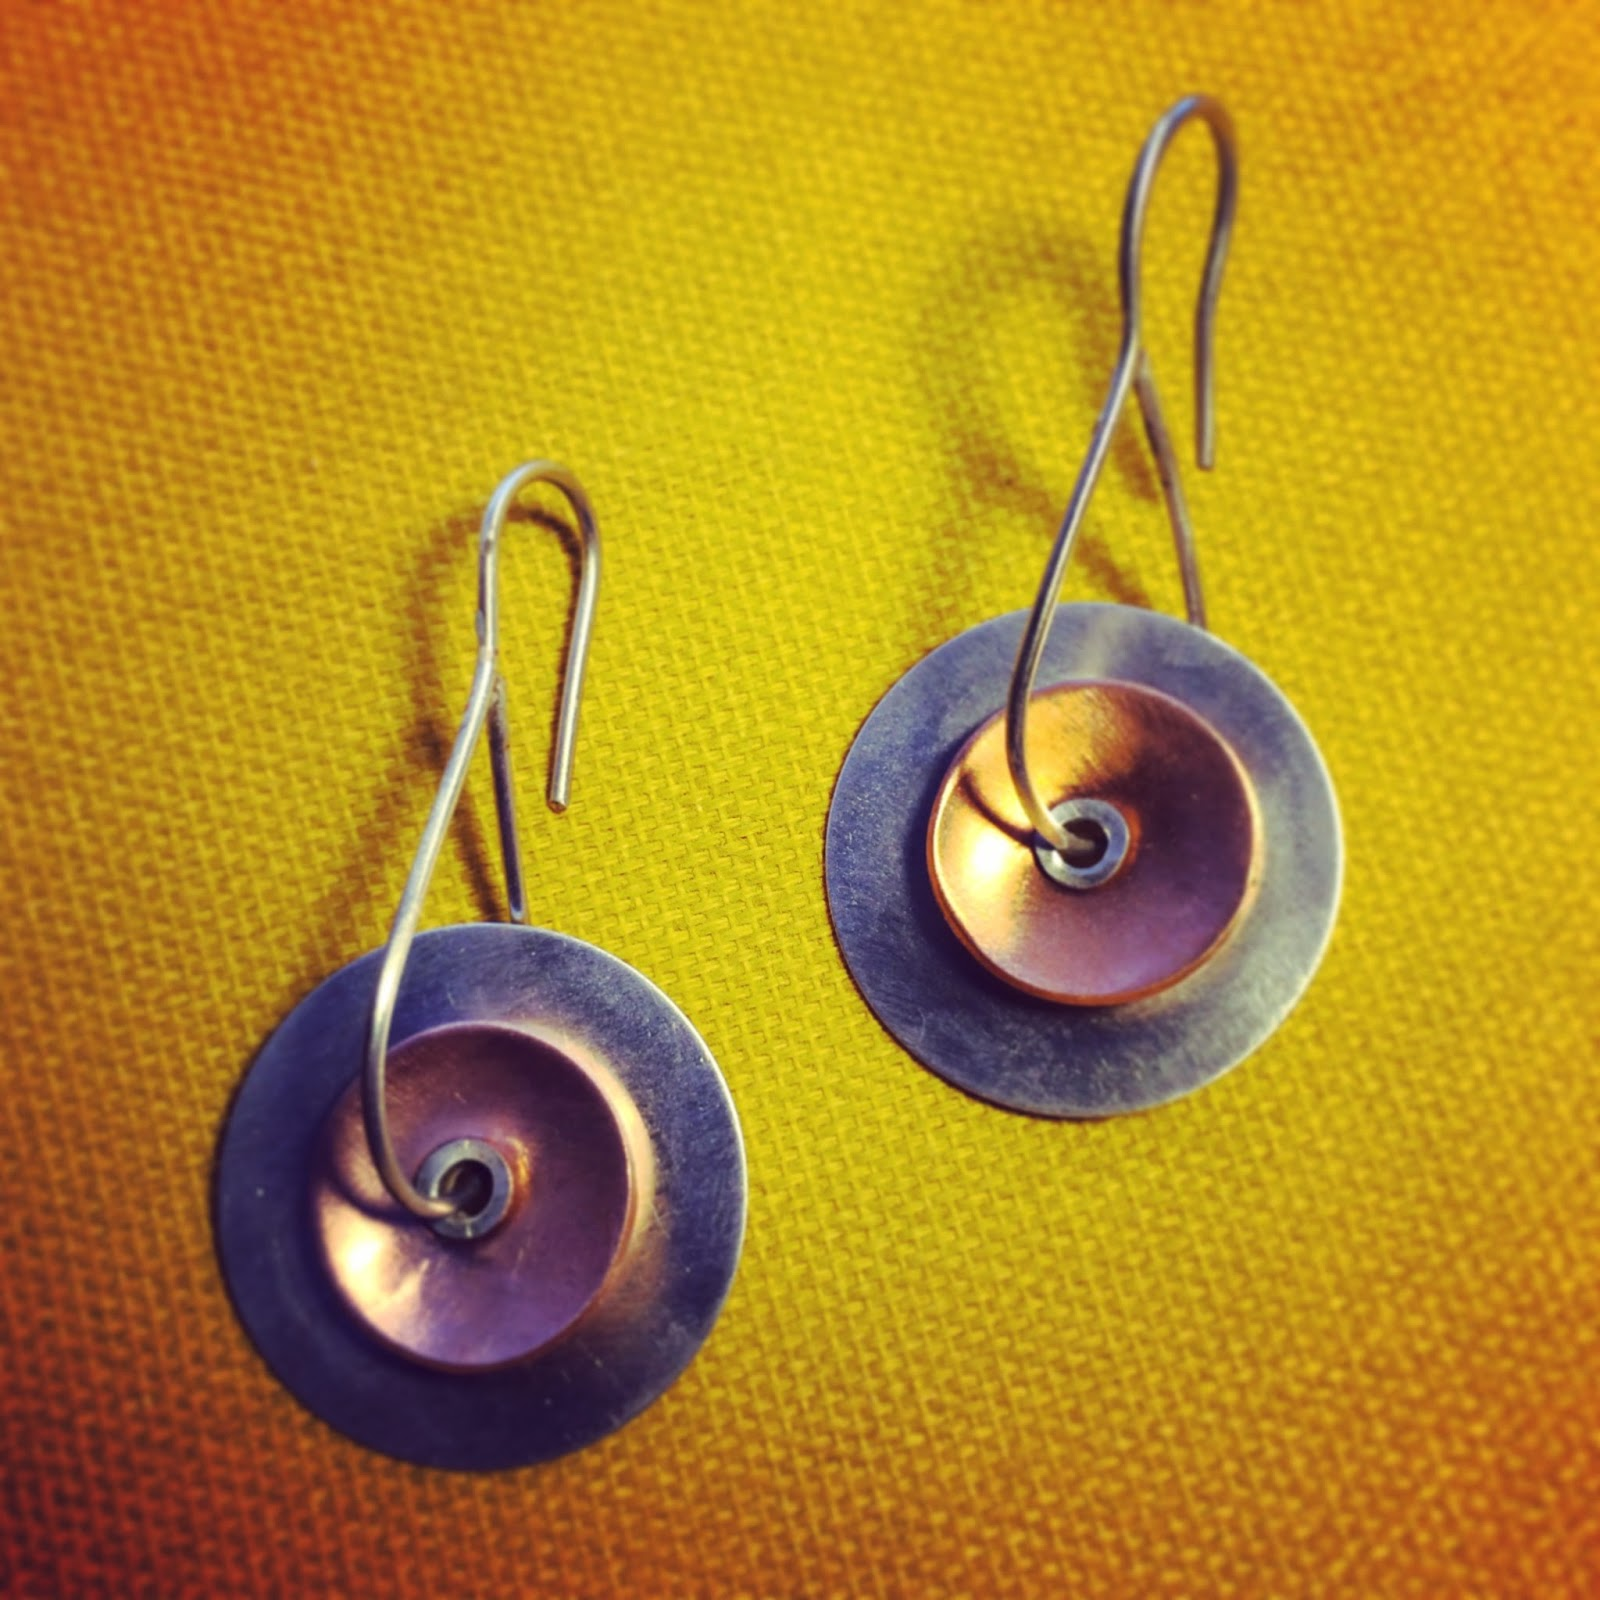 Two disc earrings made from copper and silver using a tube rivet to connect and thread the earwires through.